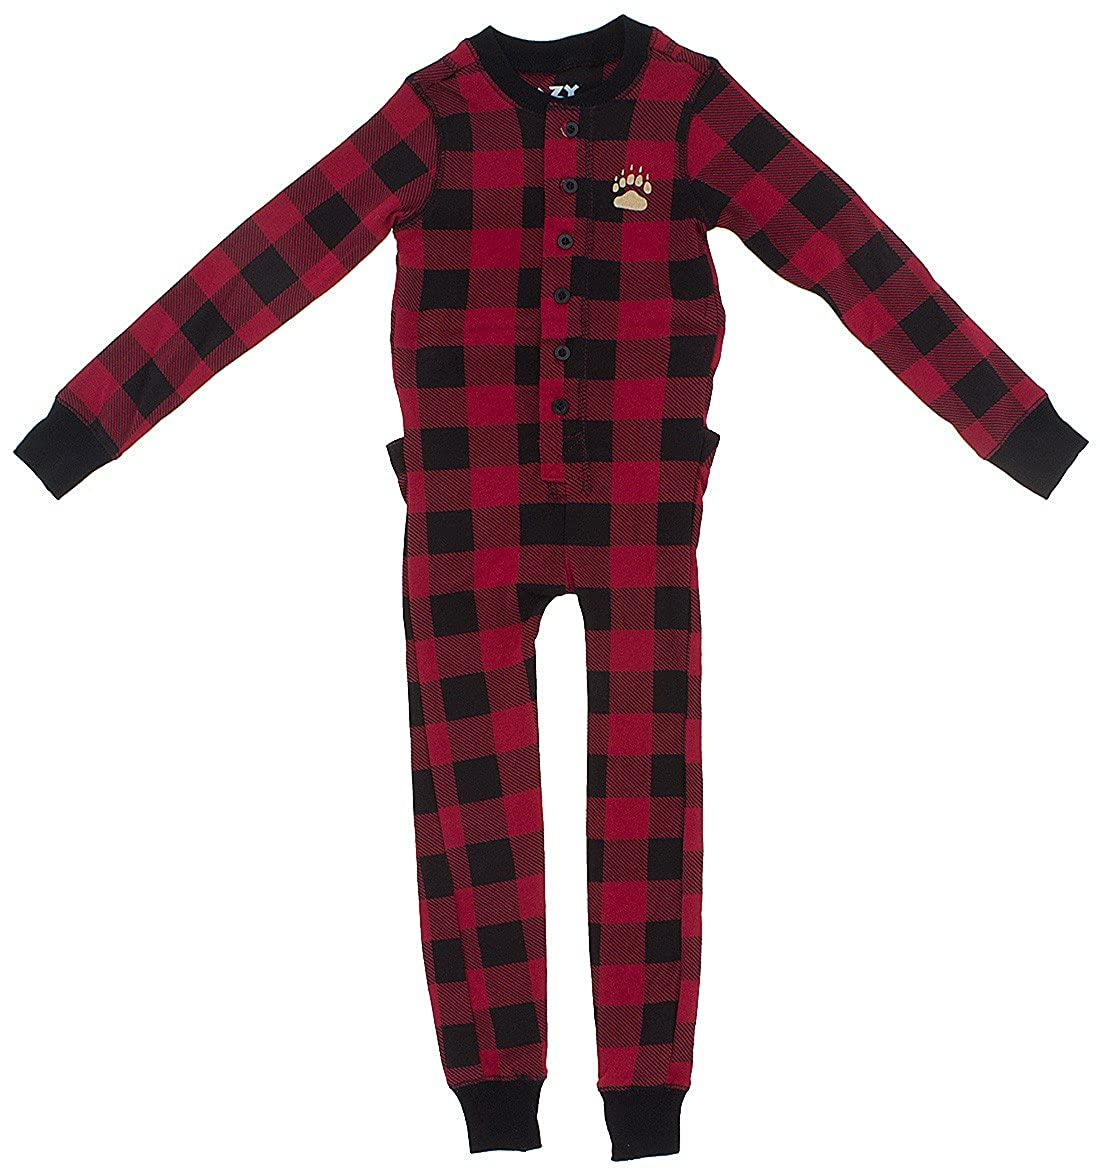 Lazy One Red Check Cotton Union Suit for Big Boys' KFJ1263T